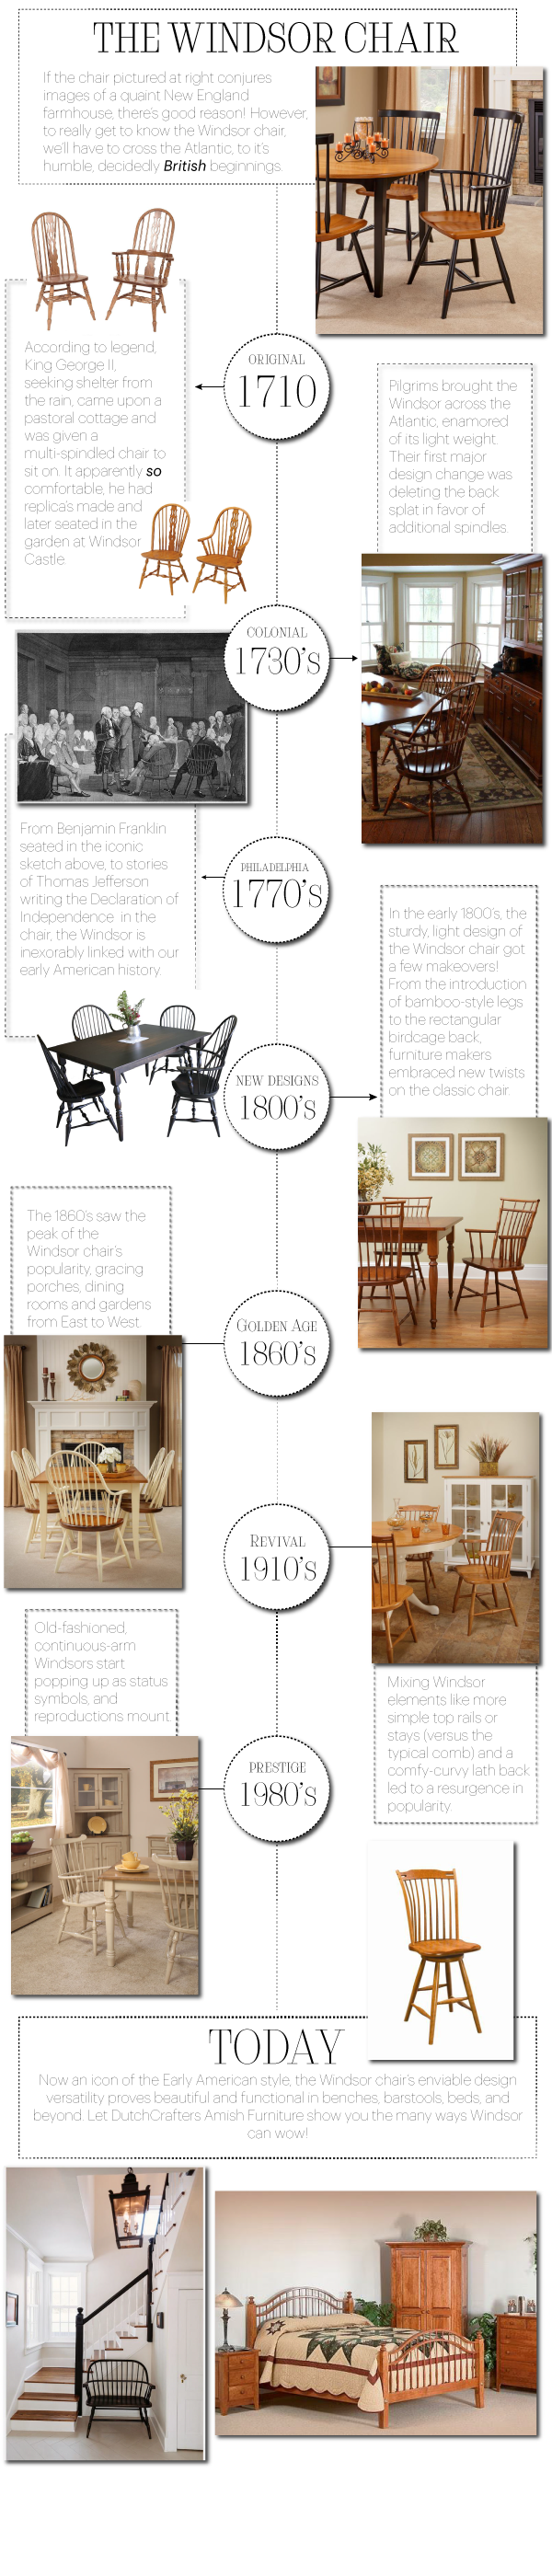 A Brief History of the Windsor Chair